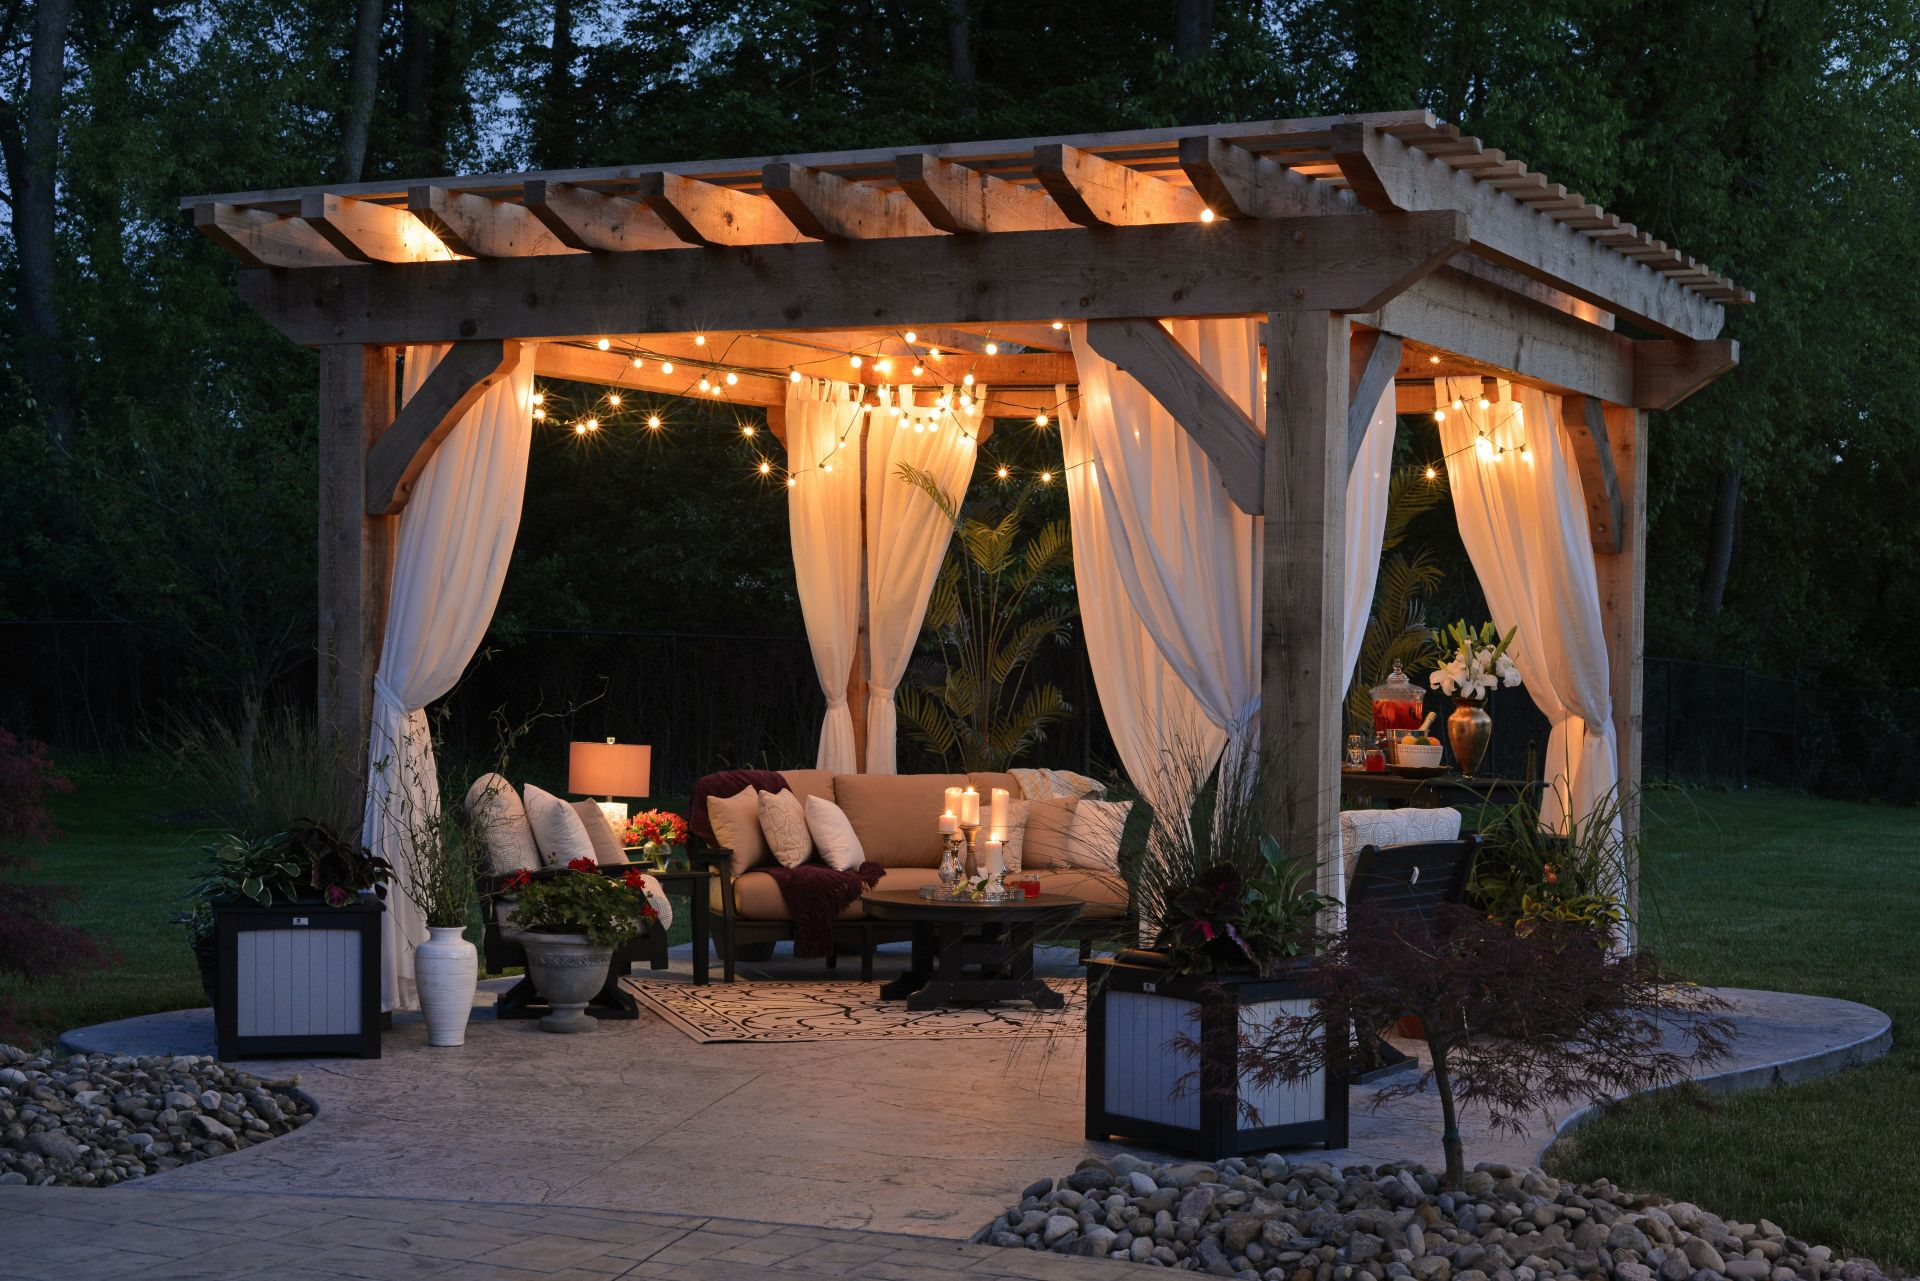 5 Creative Ways to Transform Your Outdoor Space